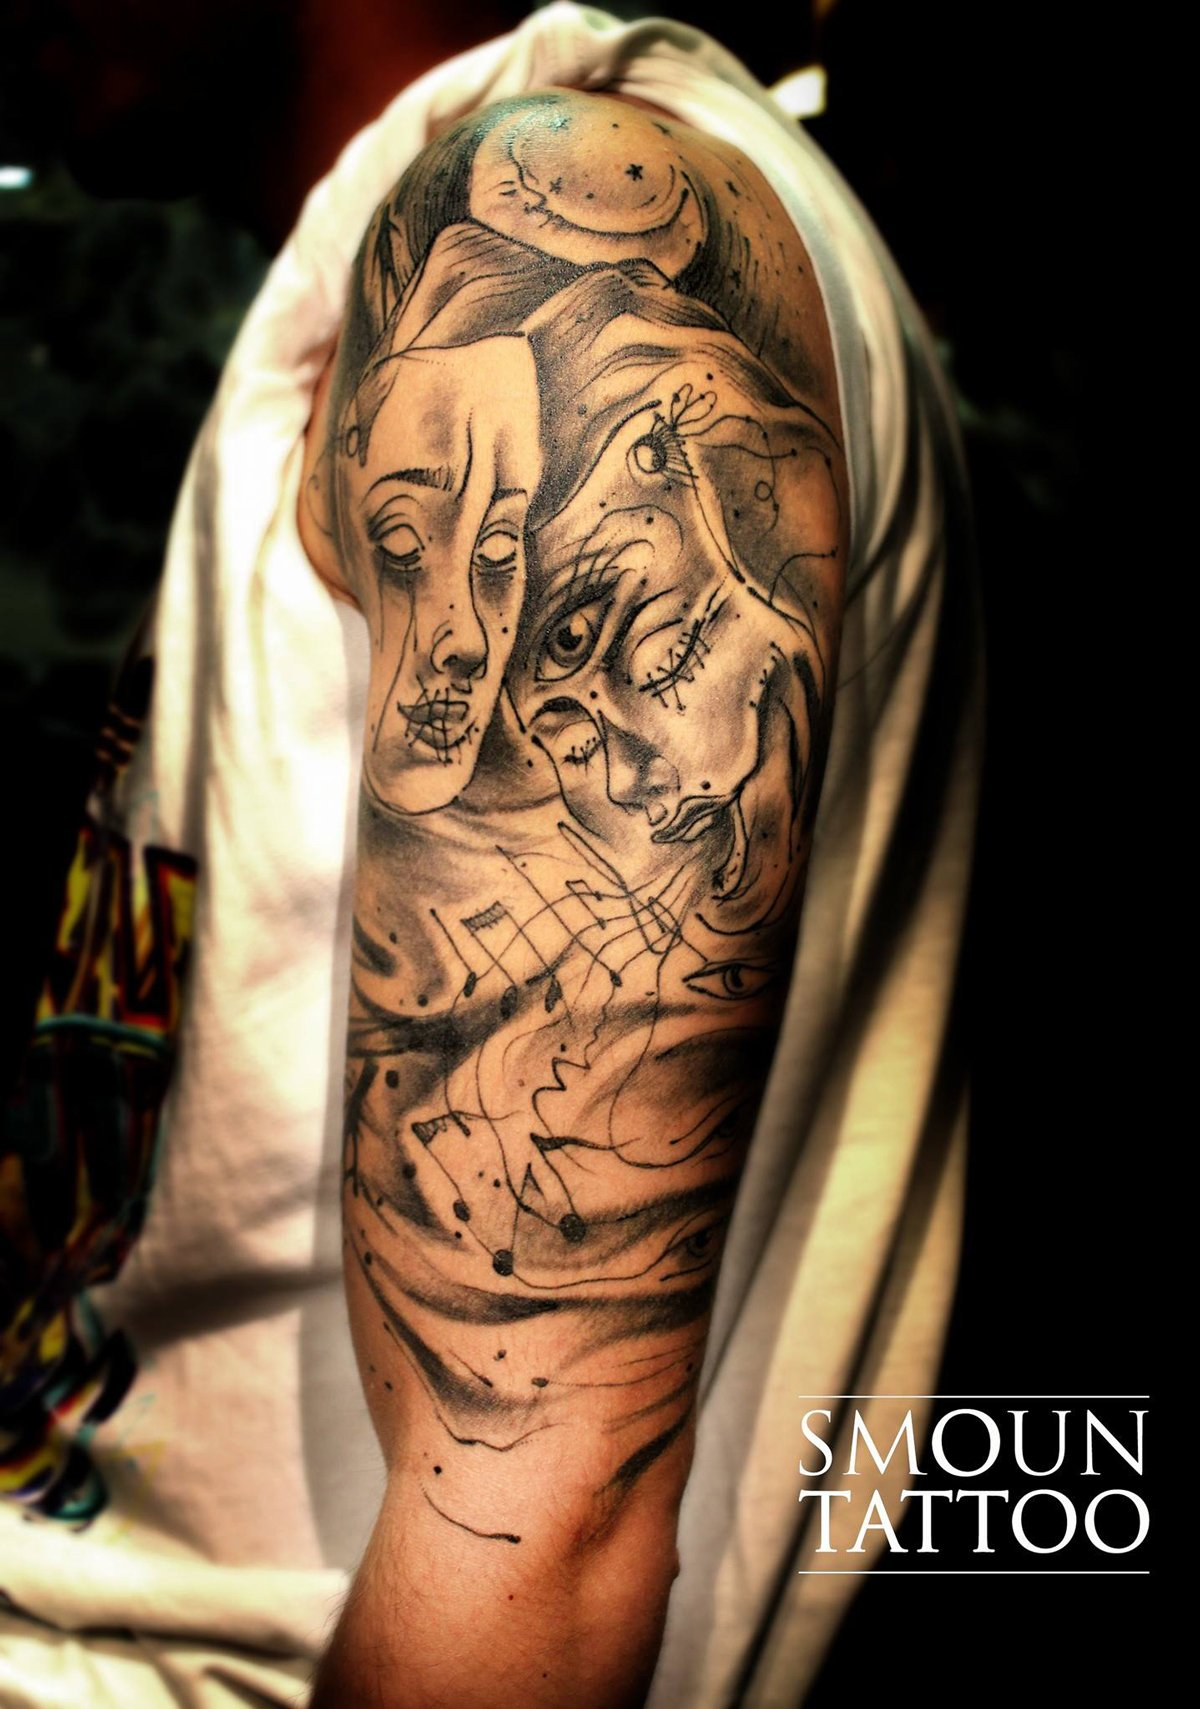 Abstract tattoo Smoun Tattoo a bari